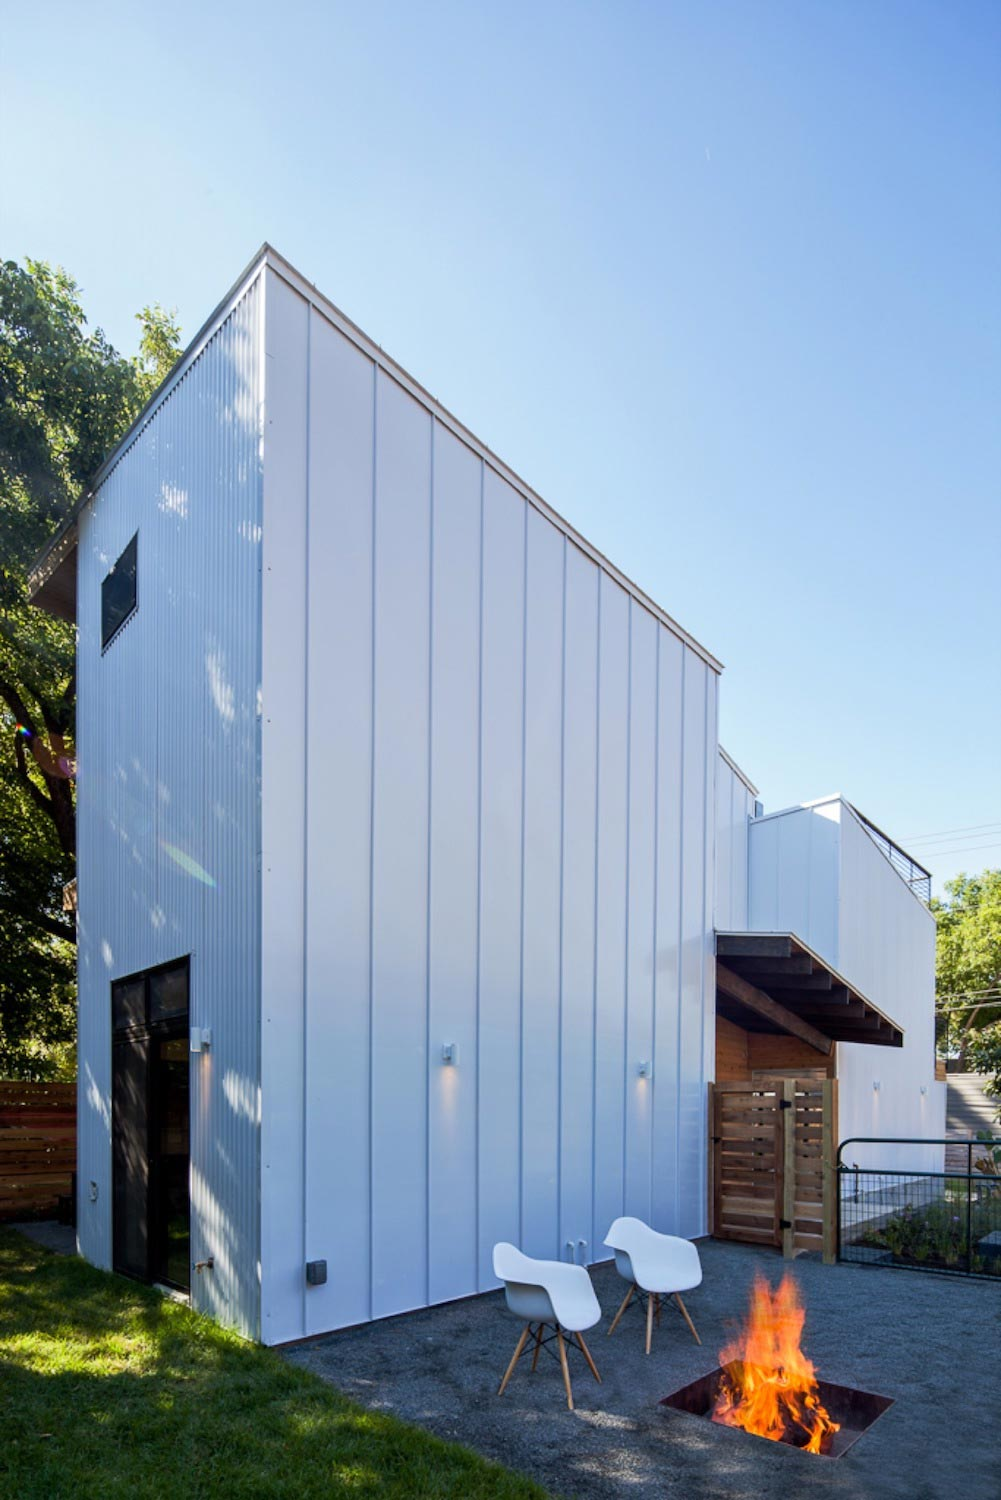 HaskellHealth House Uses Fewer Resources In Building Consumption And Energy  Systems. Home Design